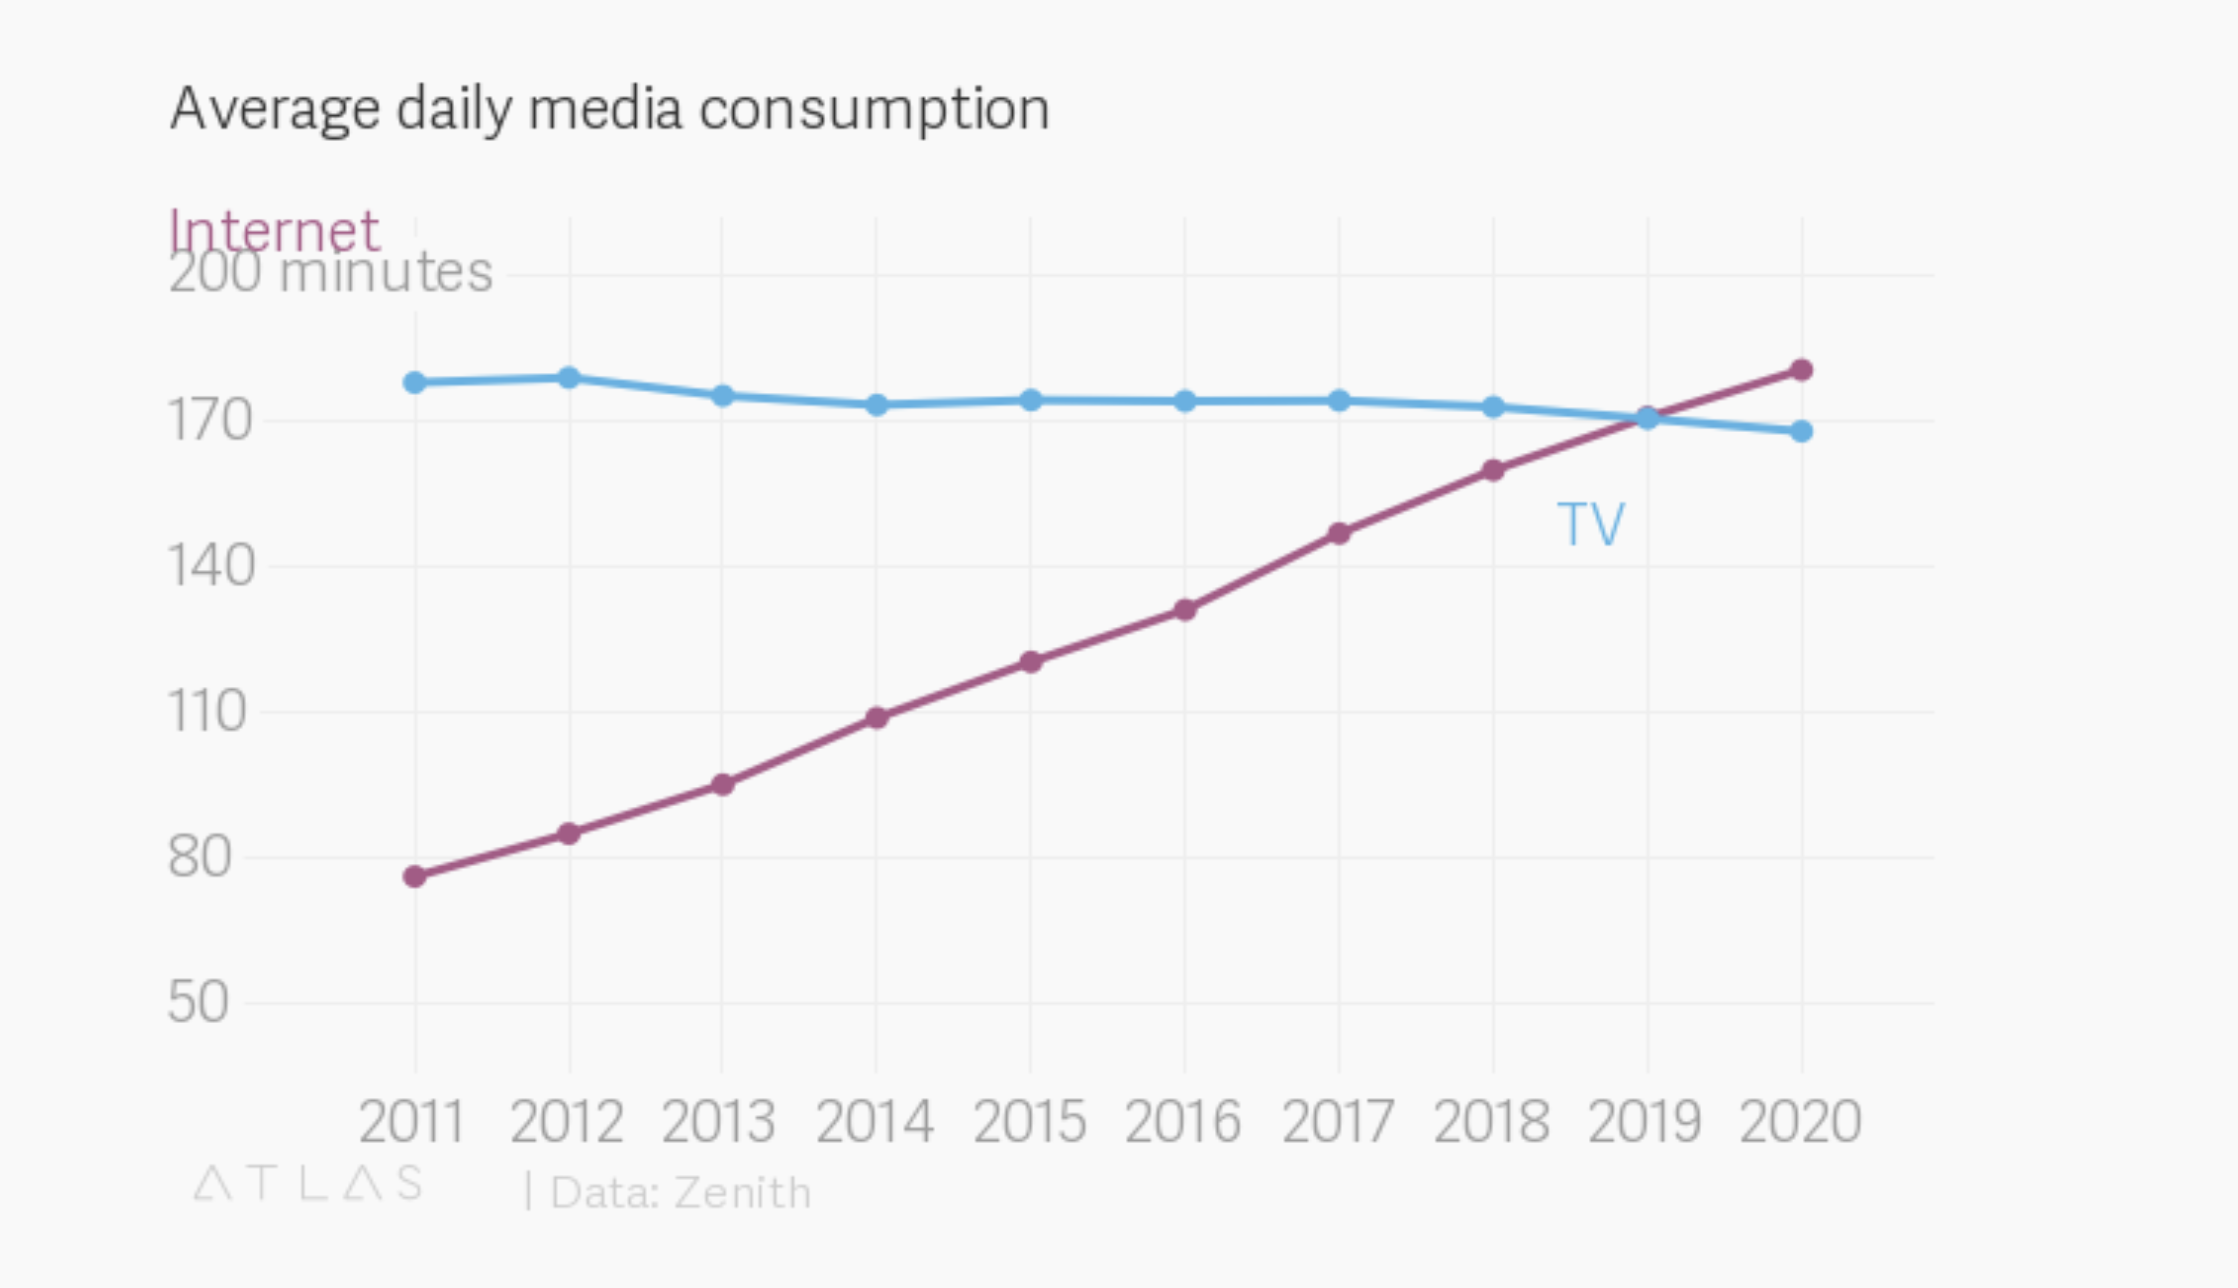 This year saw the tipping point - when more of used the internet to watch videos than traditional TV viewing